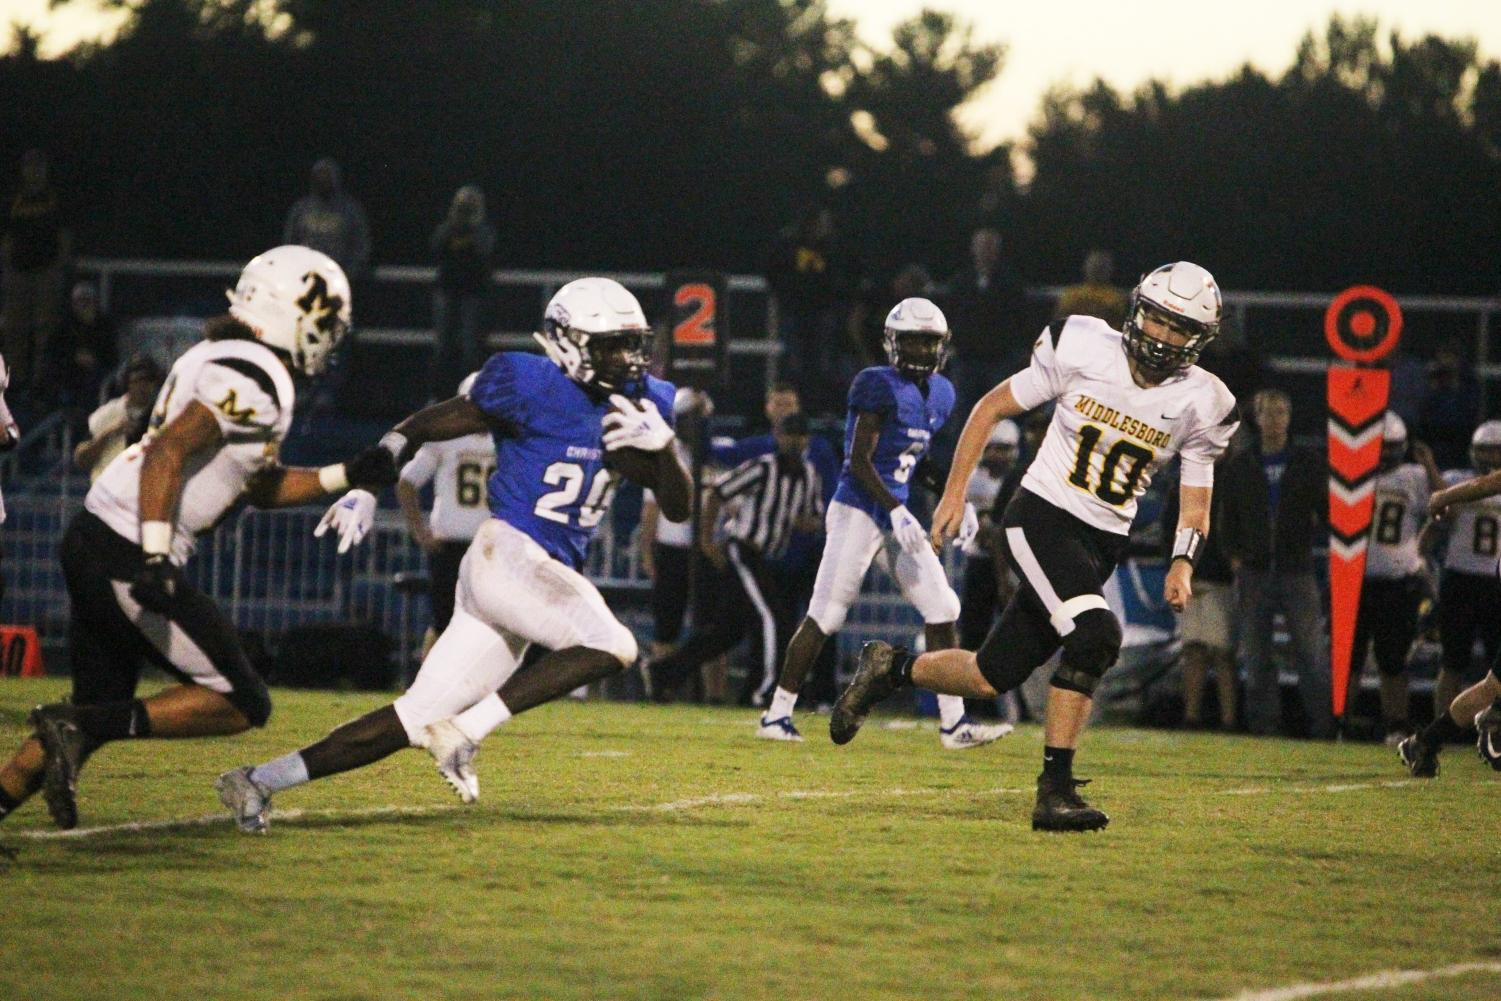 Freshman Xavier Brown eludes Middlesboro players on his way to a touchdown in the Eagles' decisive victory.